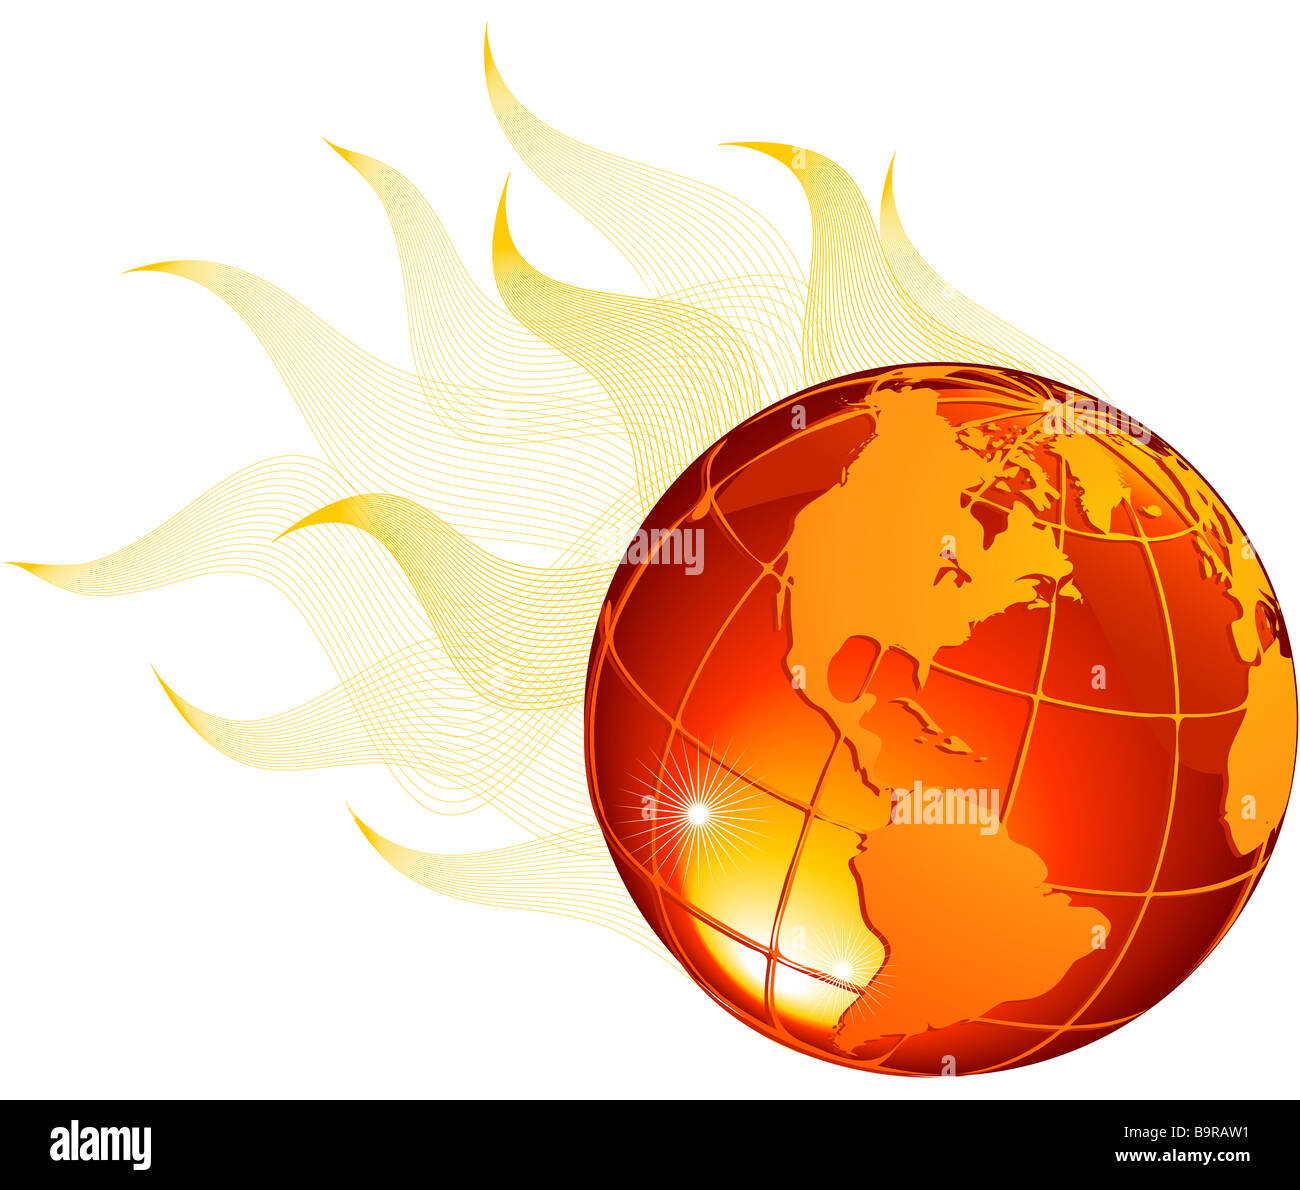 Global warming issues - Stock Image